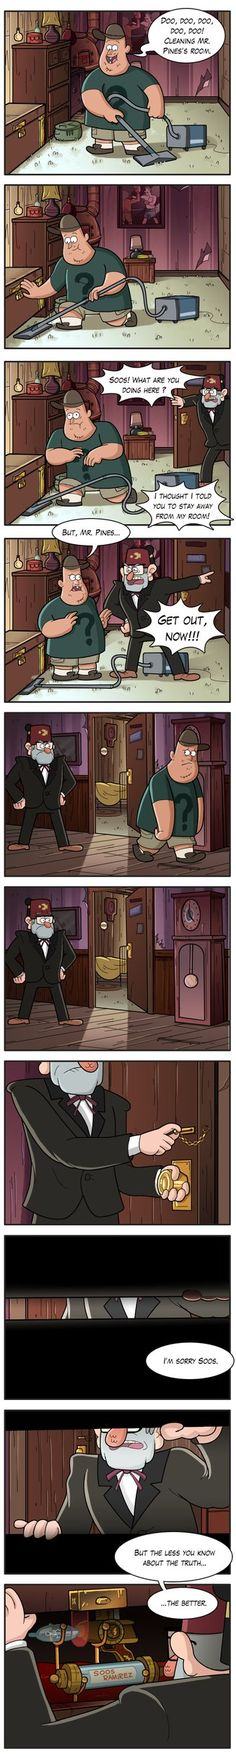 Stan's room by markmak on DeviantArt